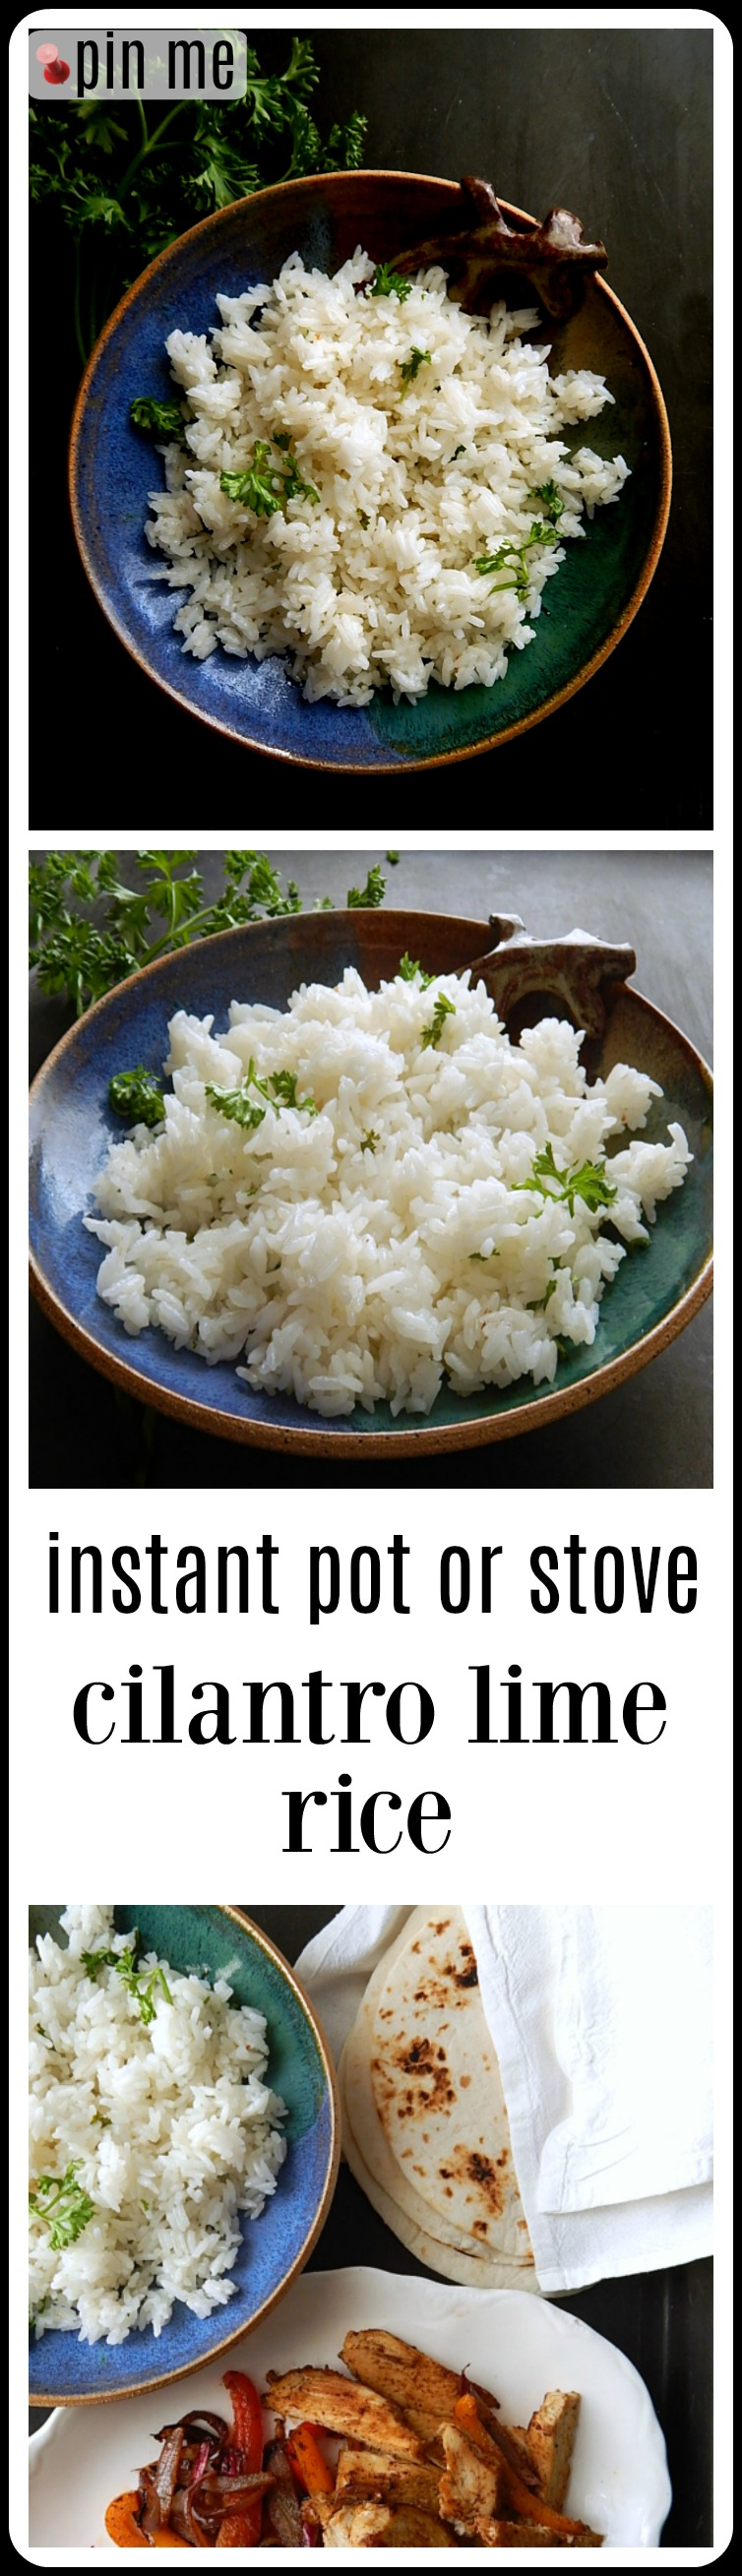 Cilantro Lime Rice - Instant Pot or Stove Top. A perfect side for anything Mexican or Southwestern.